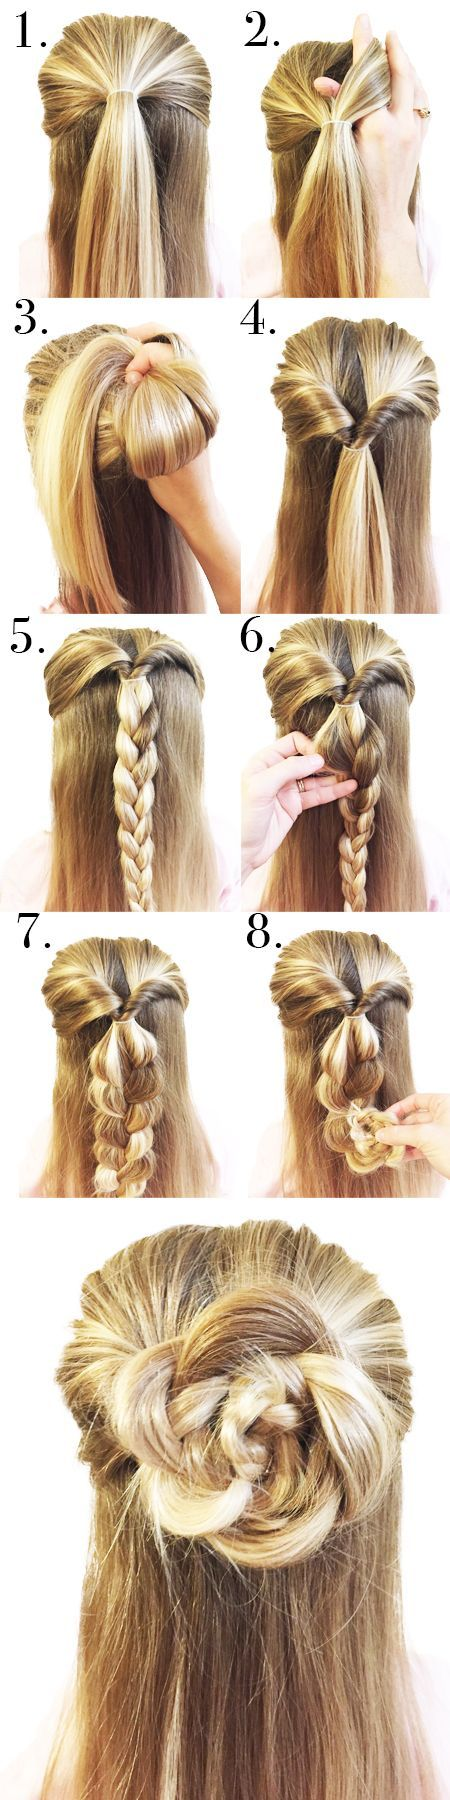 best images about hair hacks on pinterest hairstyles